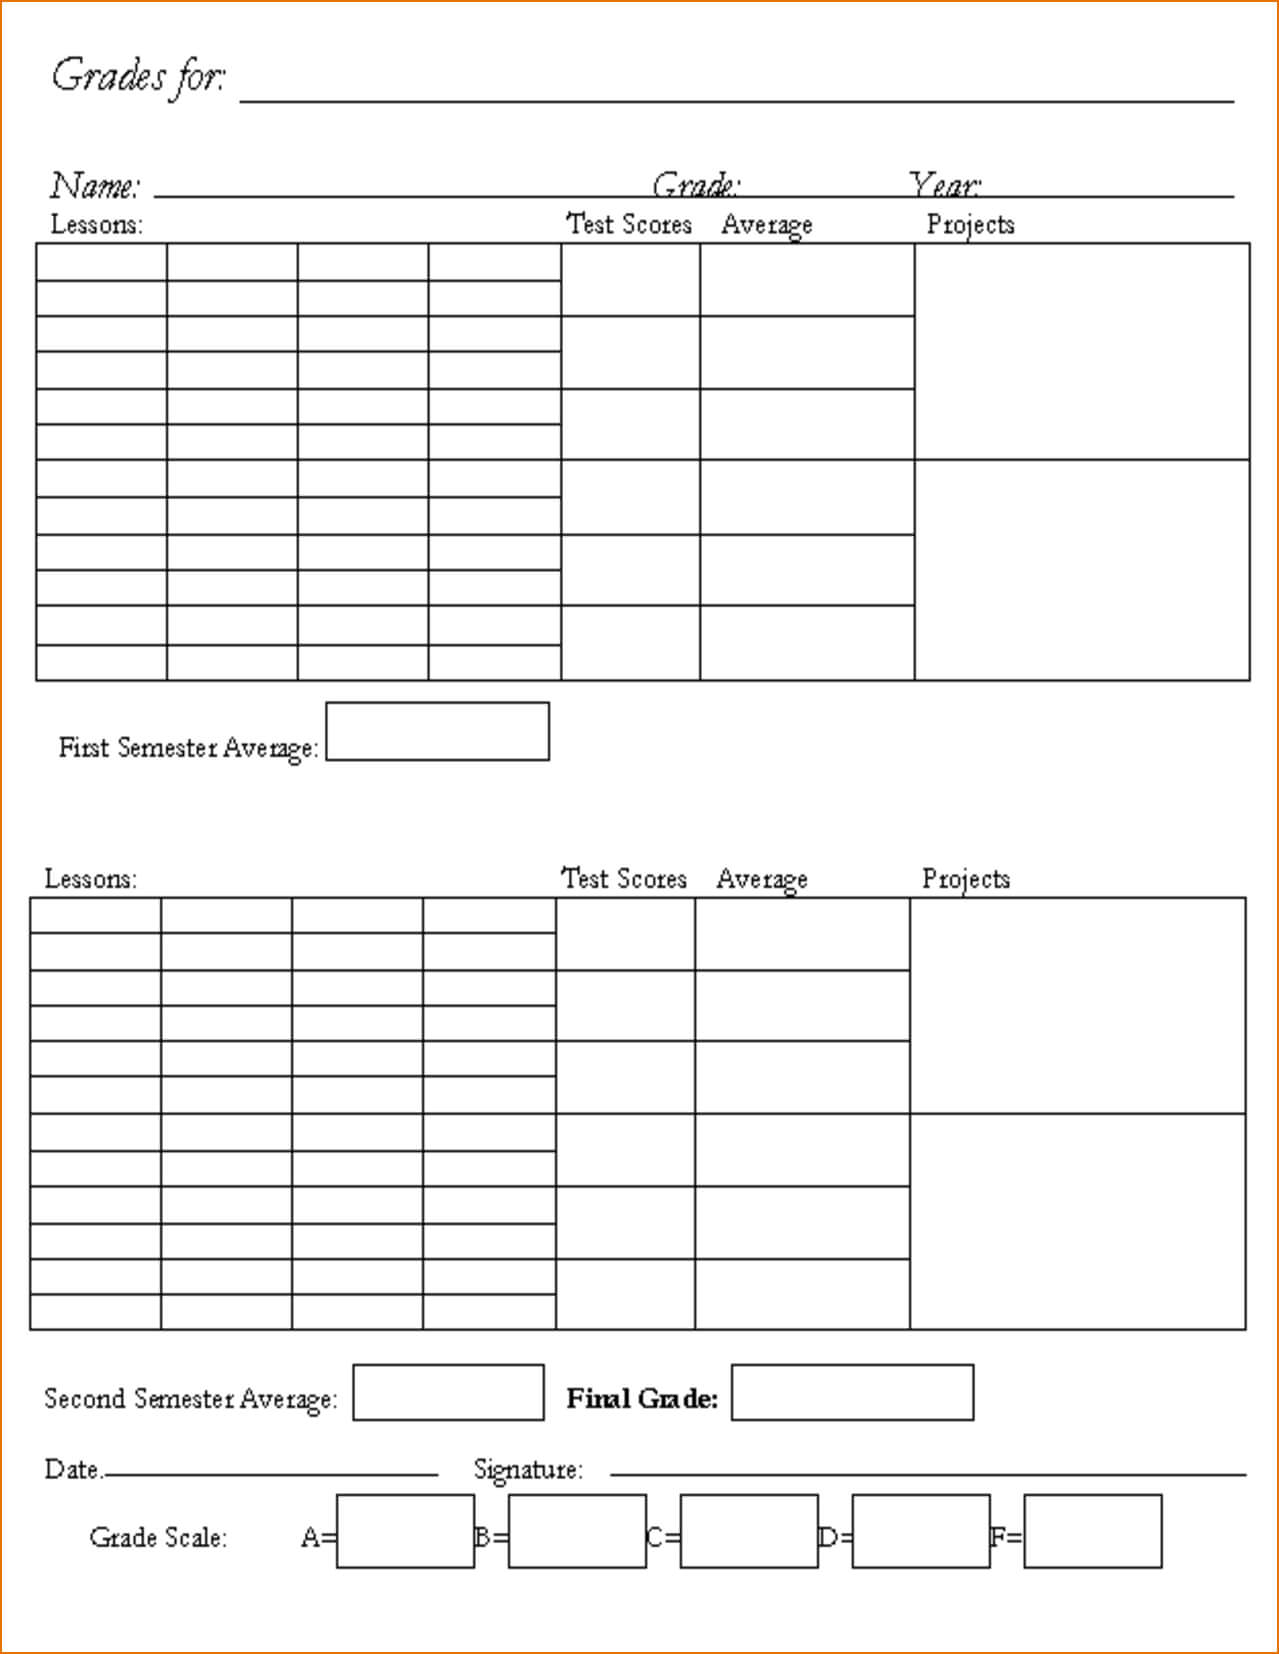 Name Card Template For Kindergarten Throughout Boyfriend with regard to Kindergarten Report Card Template